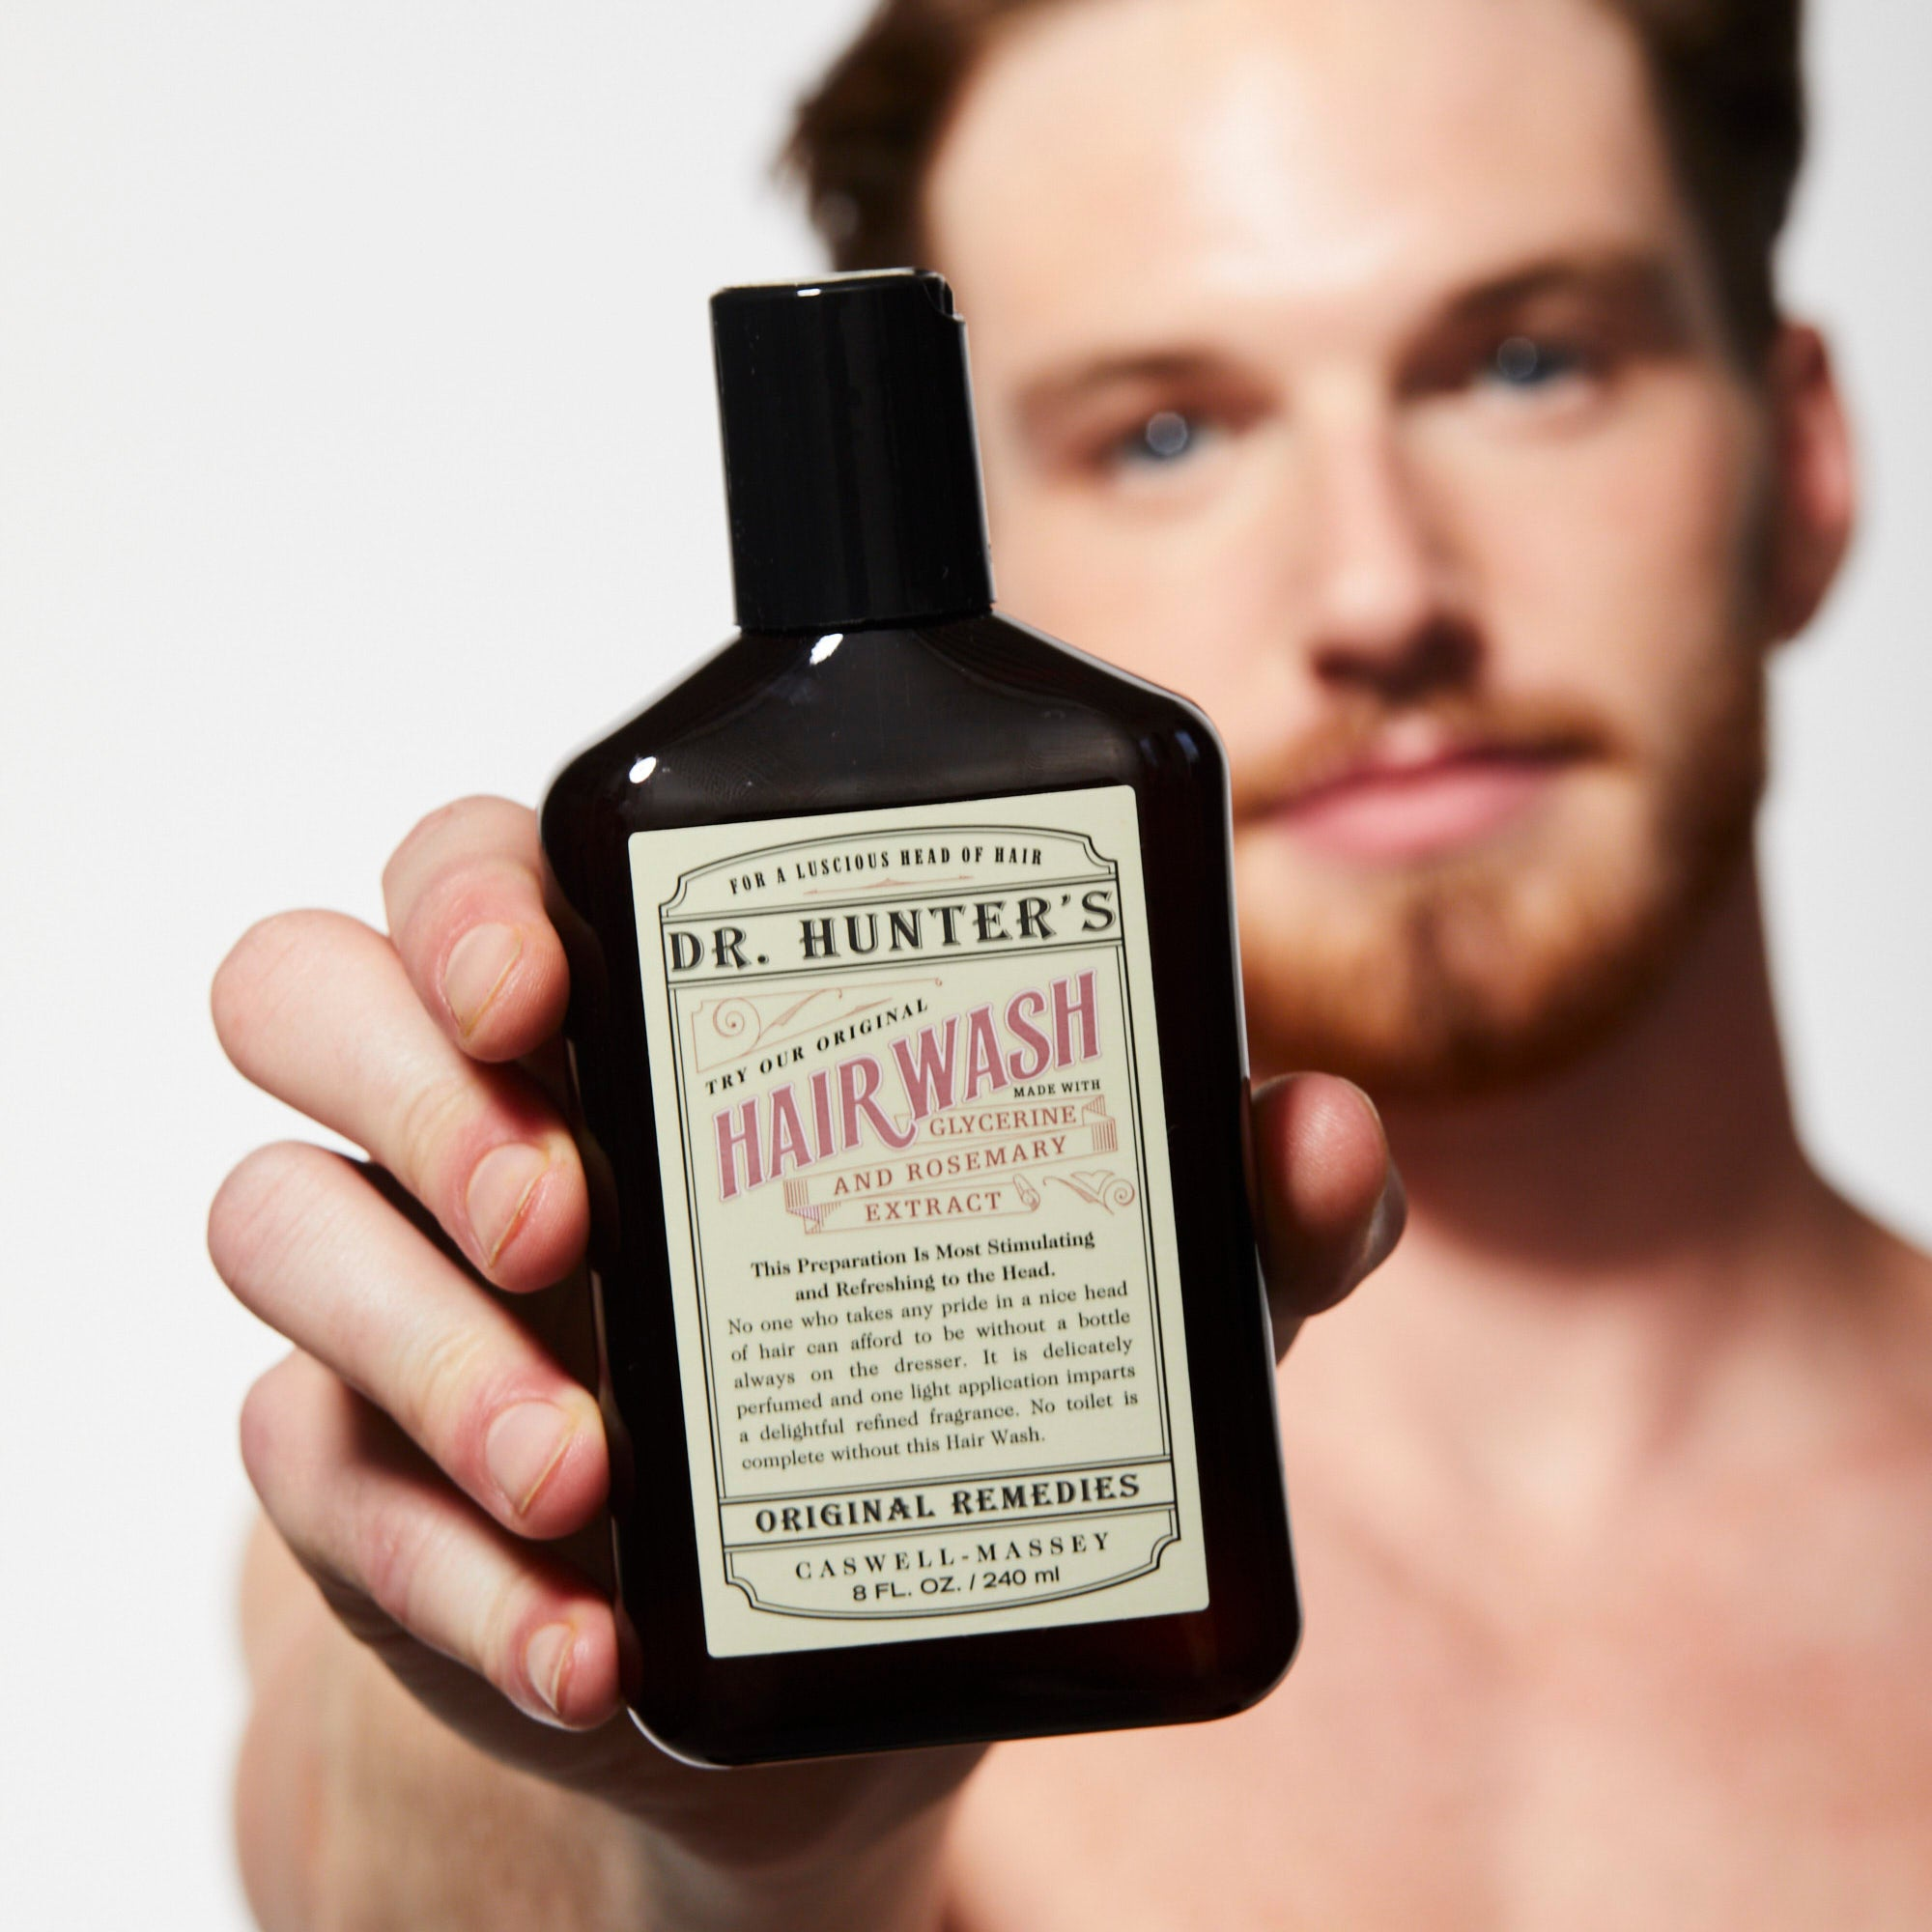 Dr. Hunter's Original Hair Wash